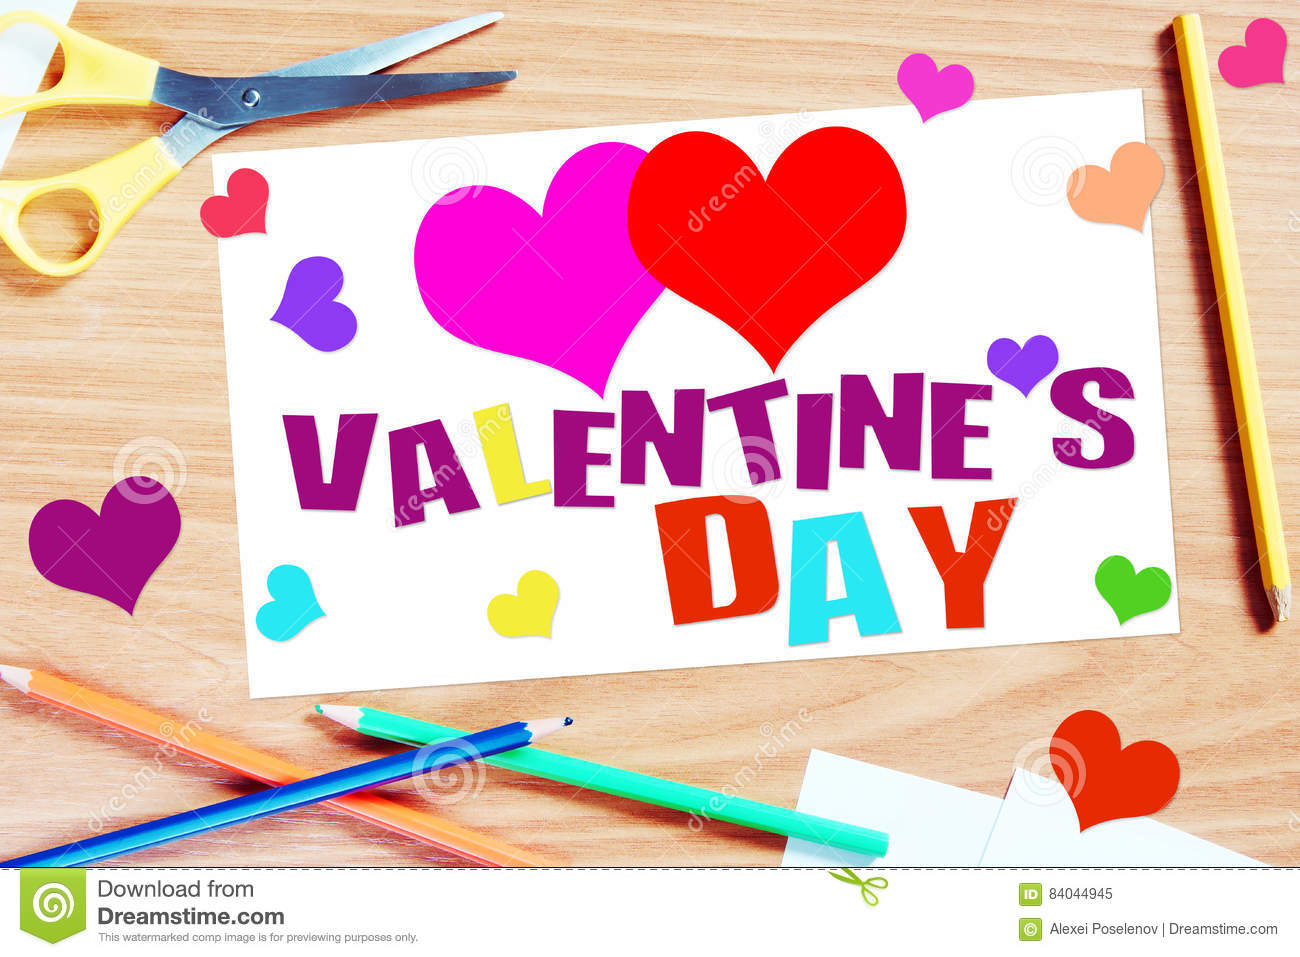 Handmade Greeting Card With Valentine Day Photo Image – Handmade Greeting Cards for Valentine Day